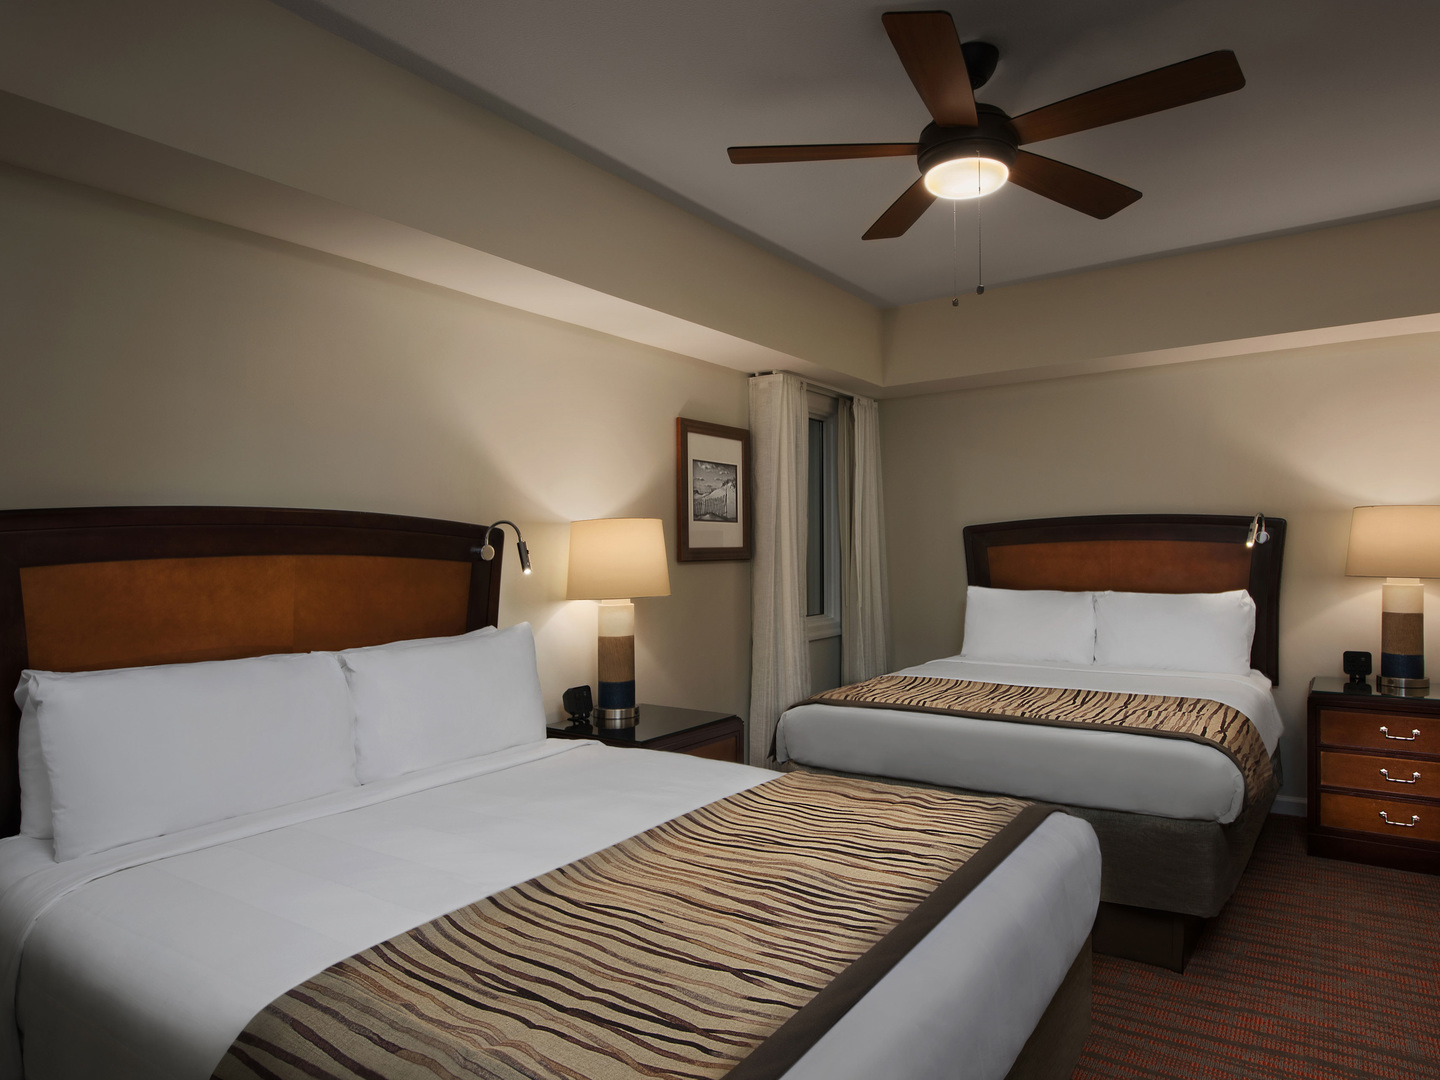 Marriott's SurfWatch<span class='trademark'>®</span> Villa 2nd Bedroom. Marriott's SurfWatch<span class='trademark'>®</span> is located in Hilton Head Island, South Carolina United States.